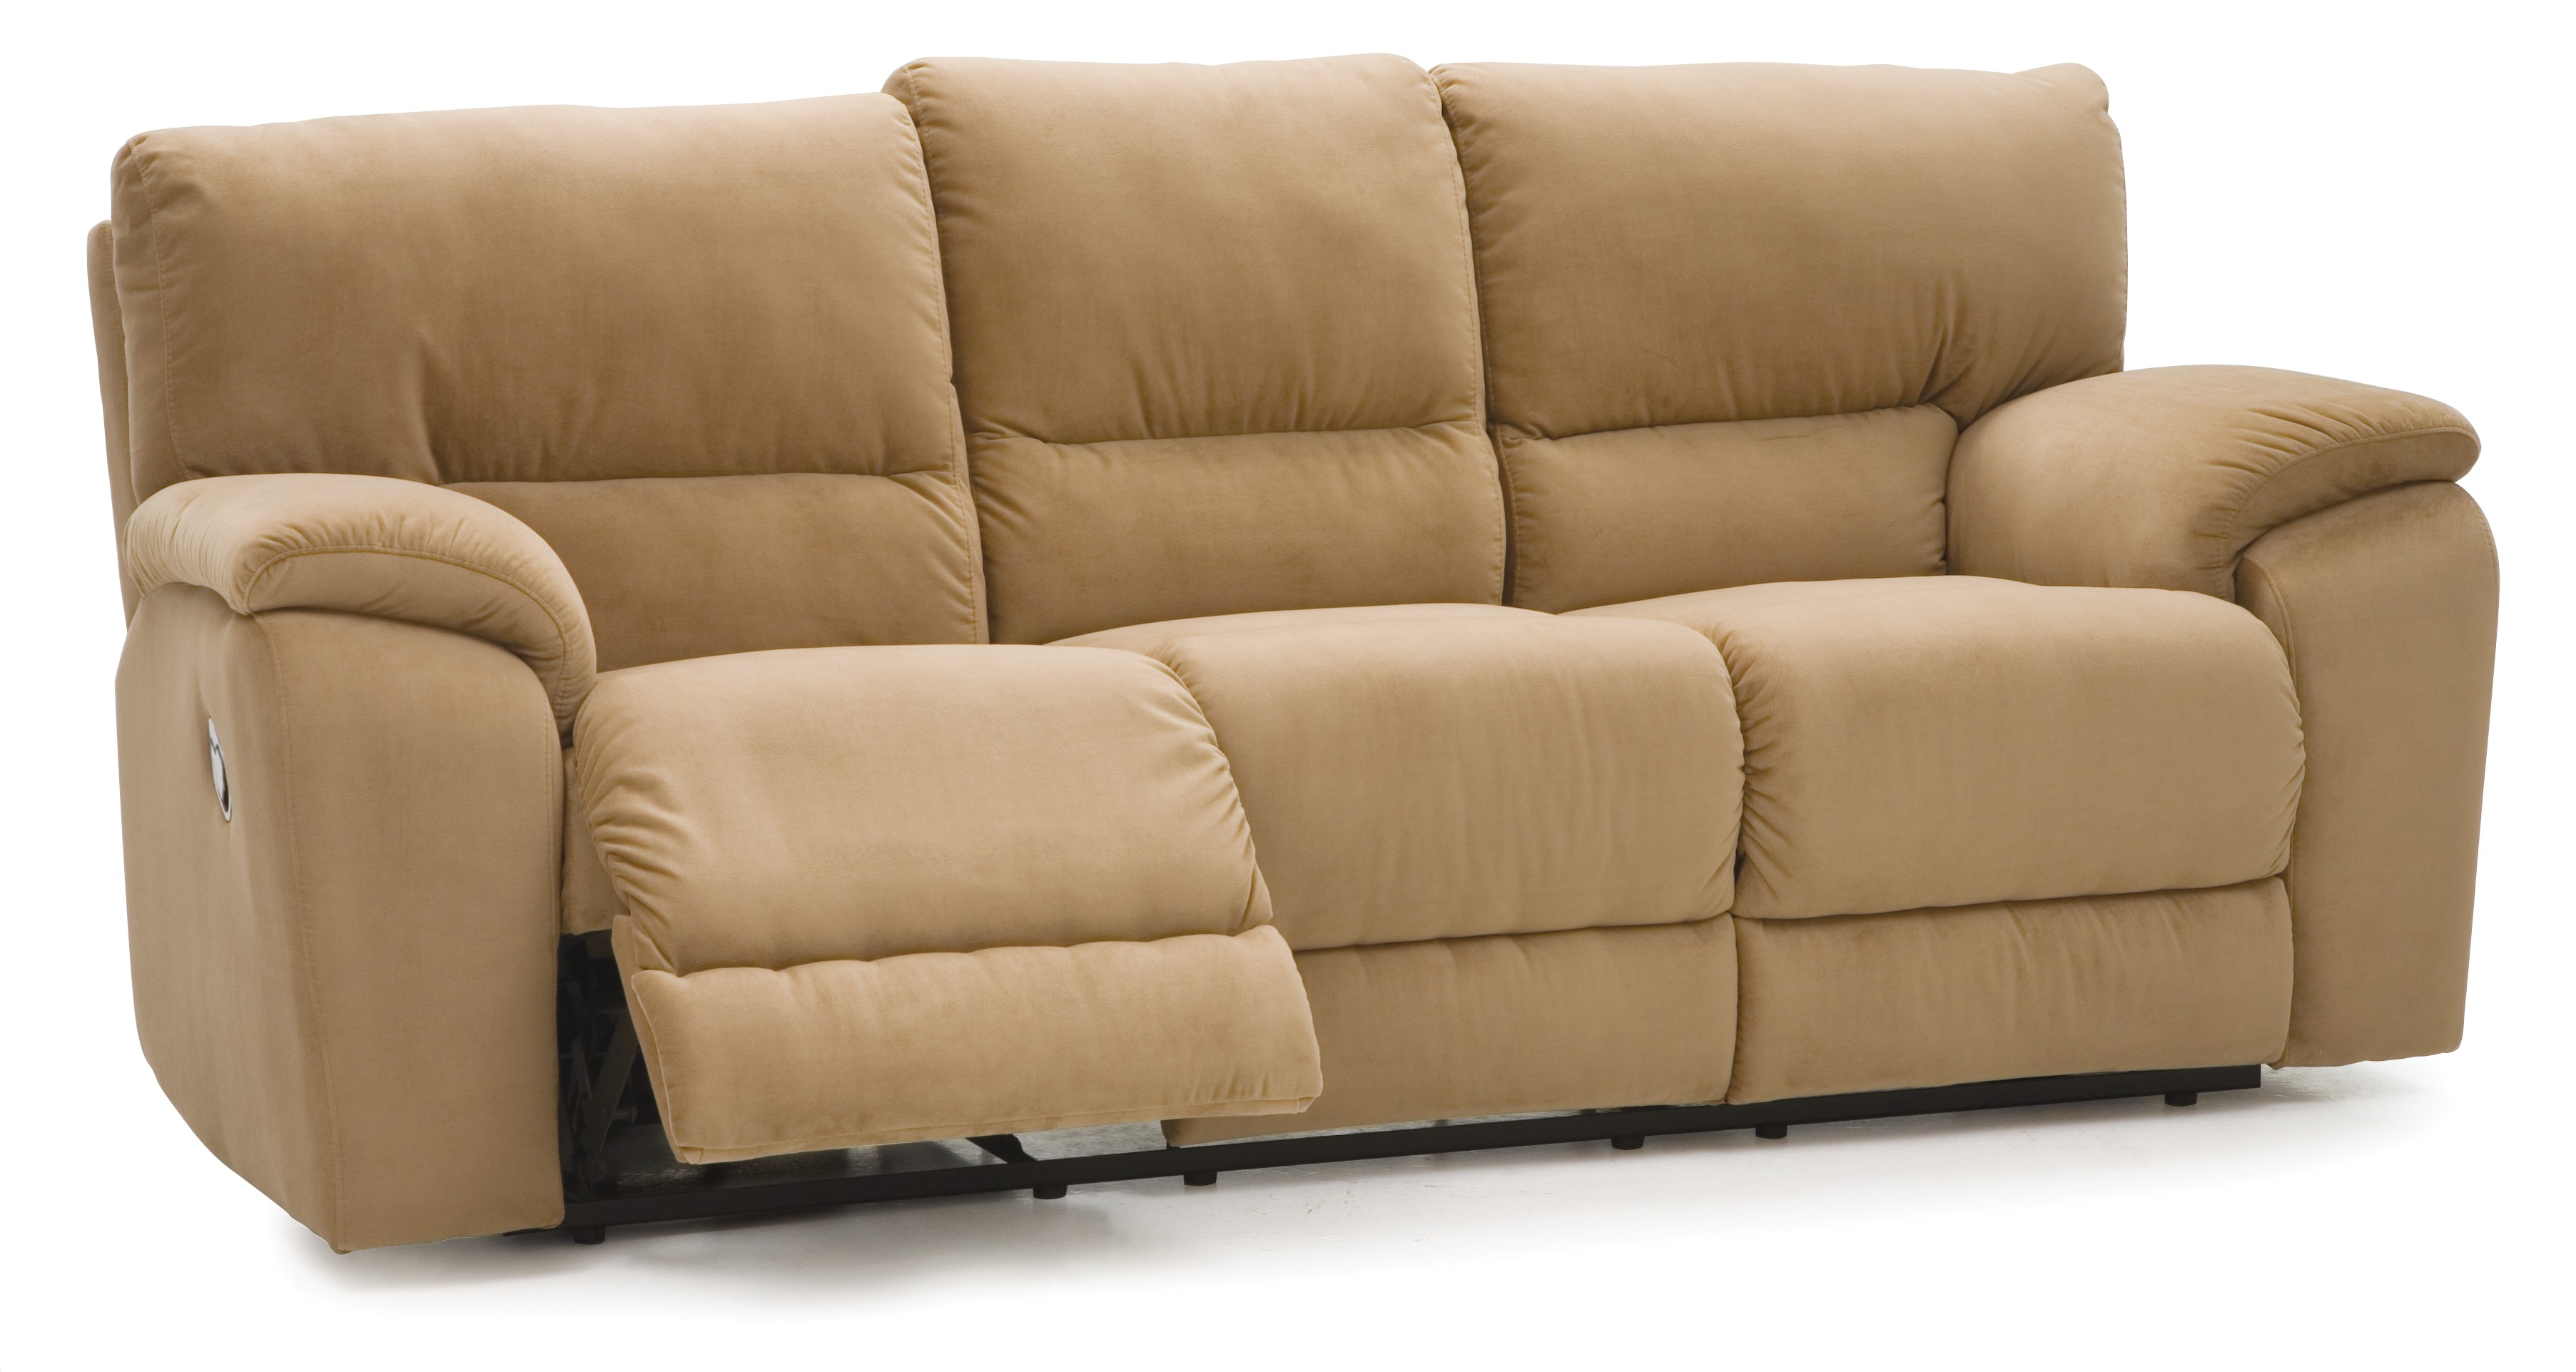 Shields 41077 46077 Reclining Sofa Collection Sofas And Sectionals ~ Individual Recliner Sofa